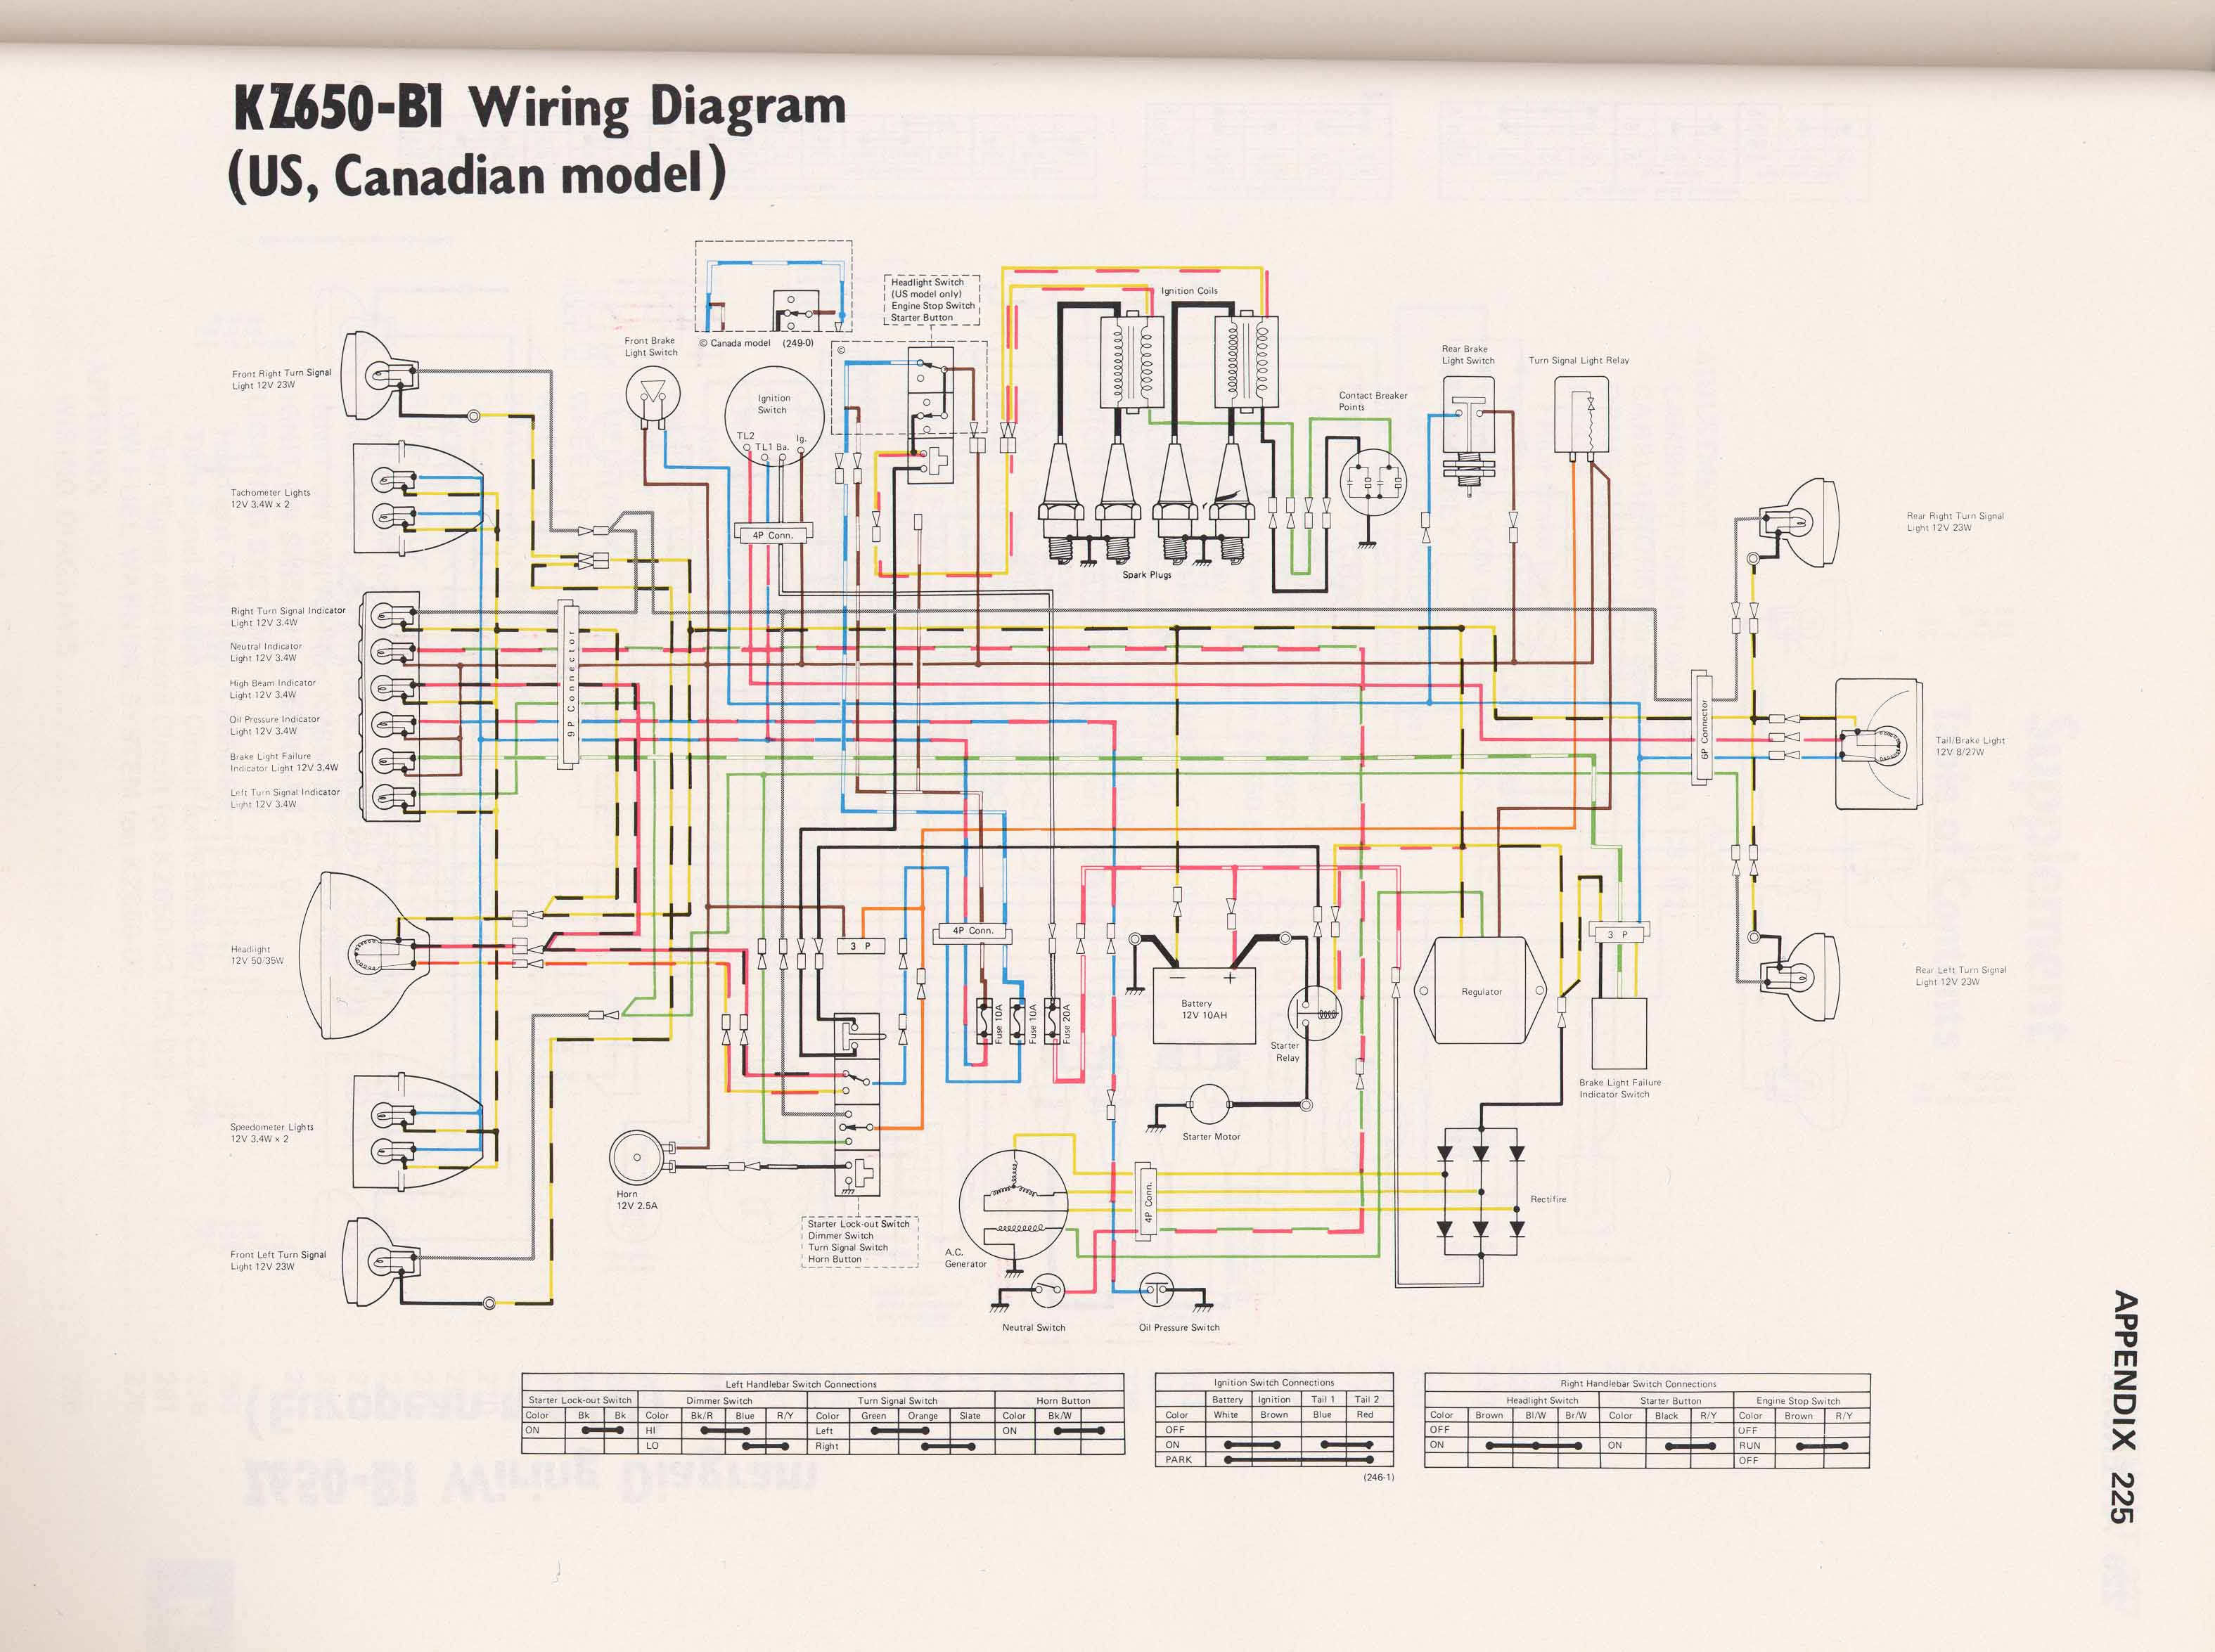 kz650 ignition wires kawasaki gpz900r wiring diagram kawasaki a7 wiring diagram